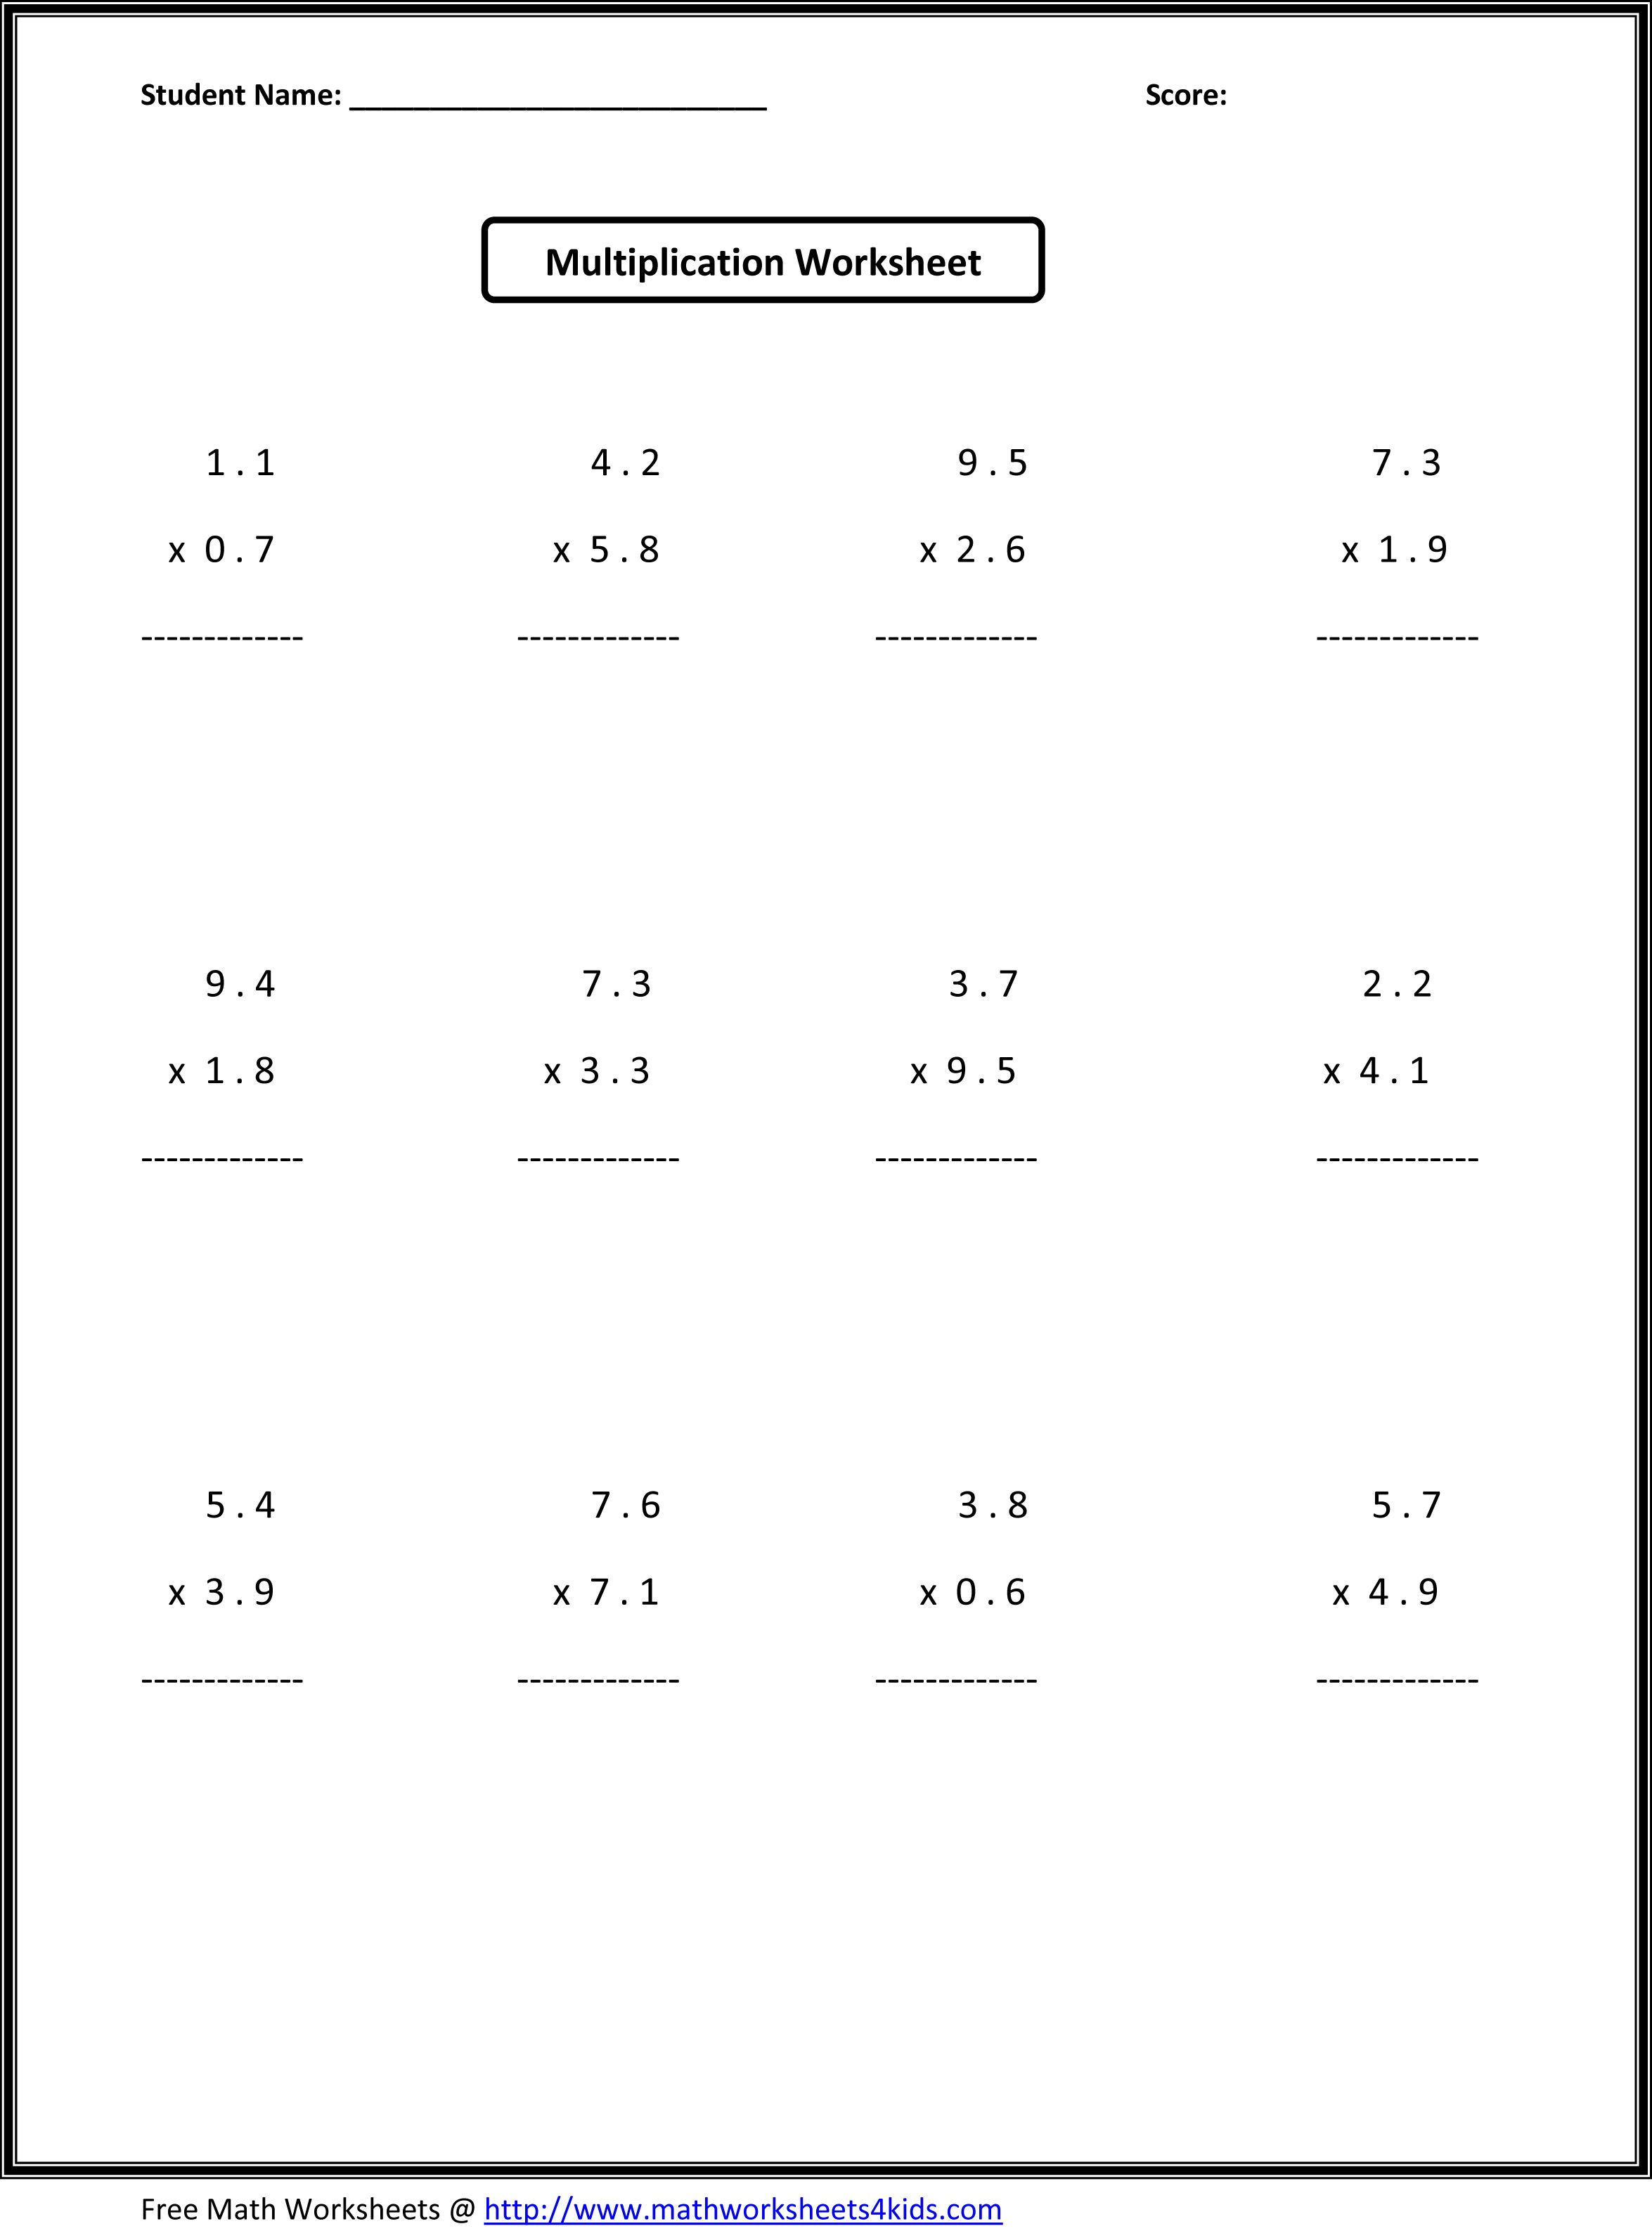 Worksheet 6th Grade Math Integers 7th grade math common core worksheet bundle 5 worksheets and sixth have ratio multiplying dividing fractions algebraic expressions equations inequalities geometry